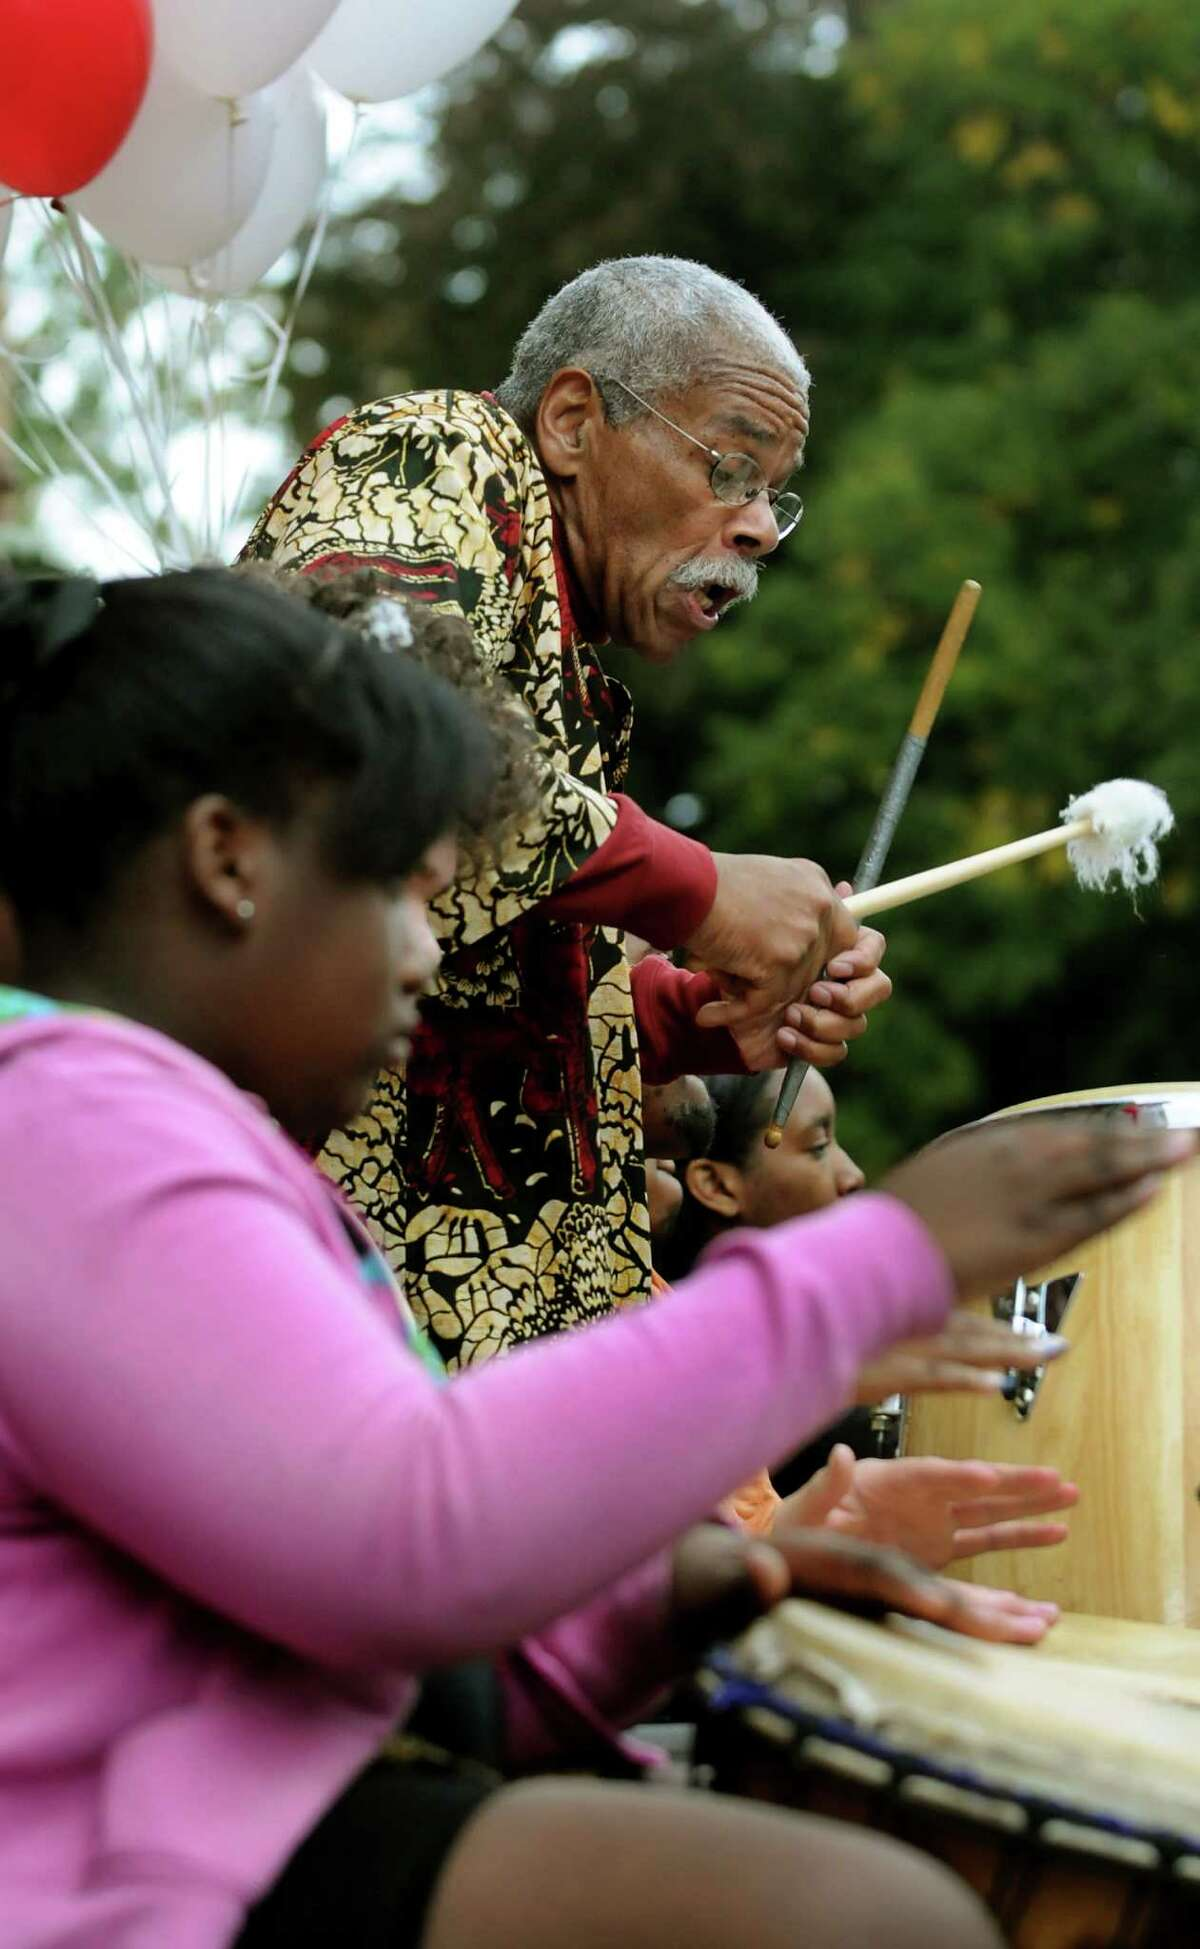 Alan Weeks, director of the Student Theater Outreach Program, right, leads the drummers during a performance before the annual AIDSWalk on Saturday, Sept. 29, 2012, at Washington Park in Albany, N.Y. (Cindy Schultz / Times Union)